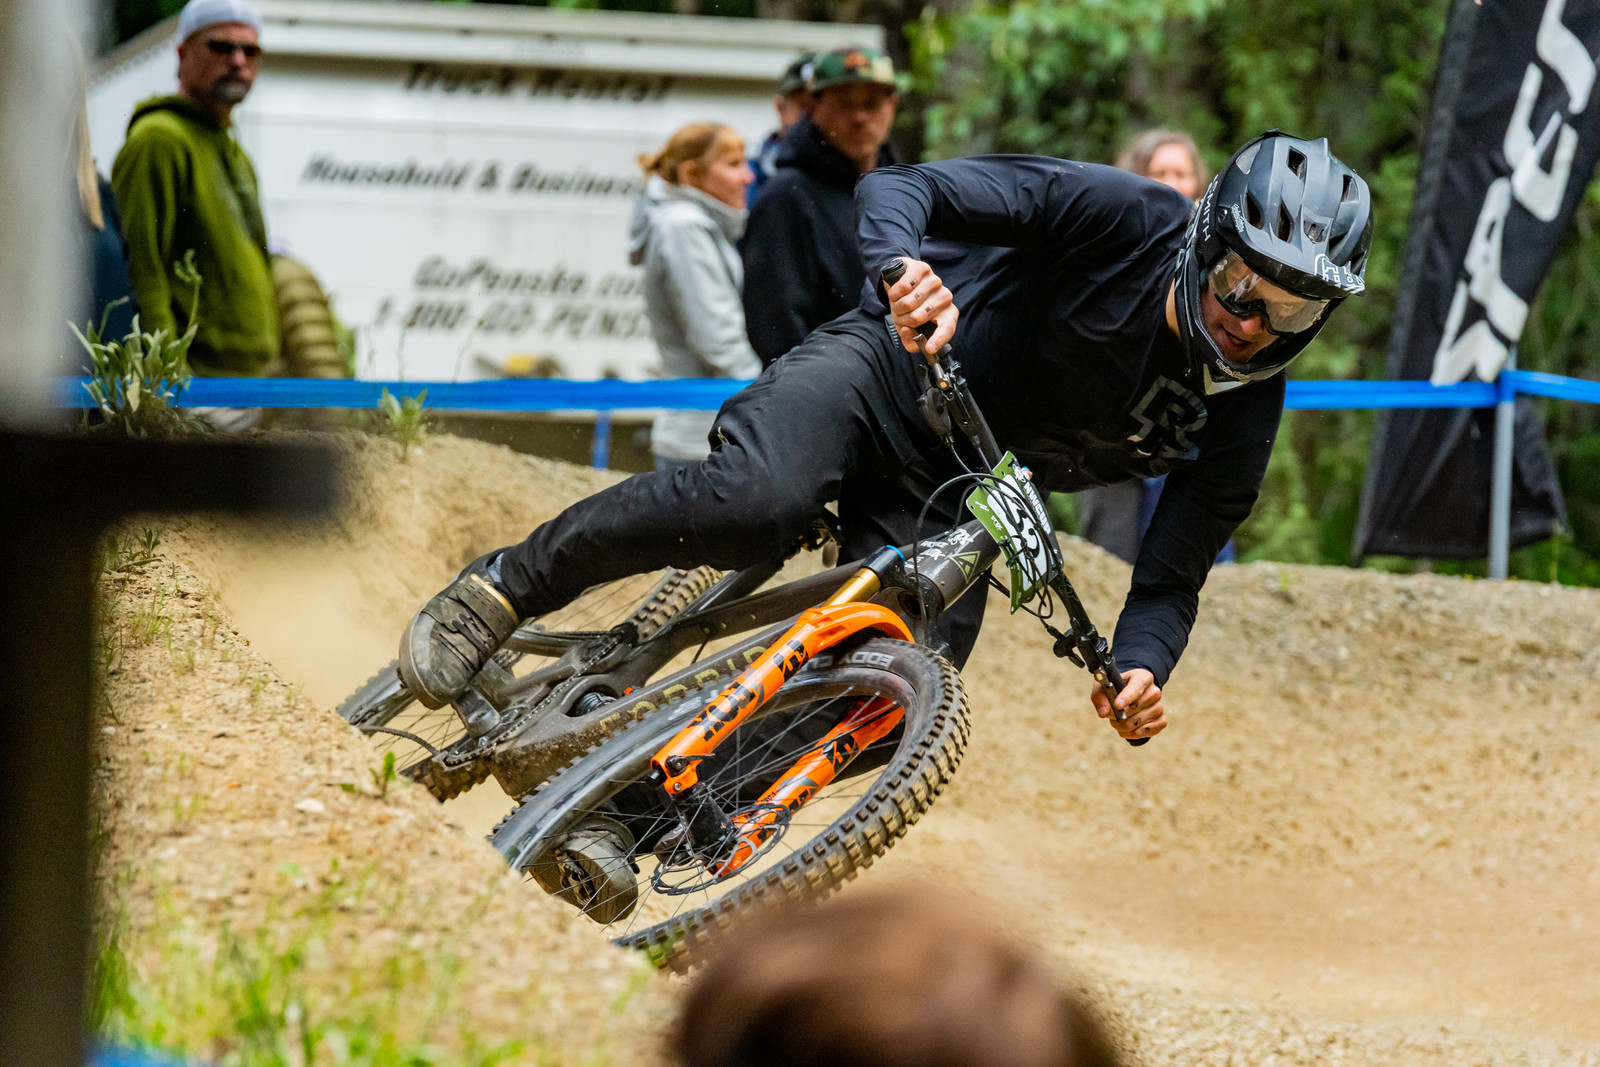 Eric Olsen rode 130 miles (plus a ferry ride) from Bellingham, WA to Port Angeles on his Forbidden Druid and then raced that bike in the Pro DH. He finished up 13th on the day. An impressive feat no doubt!